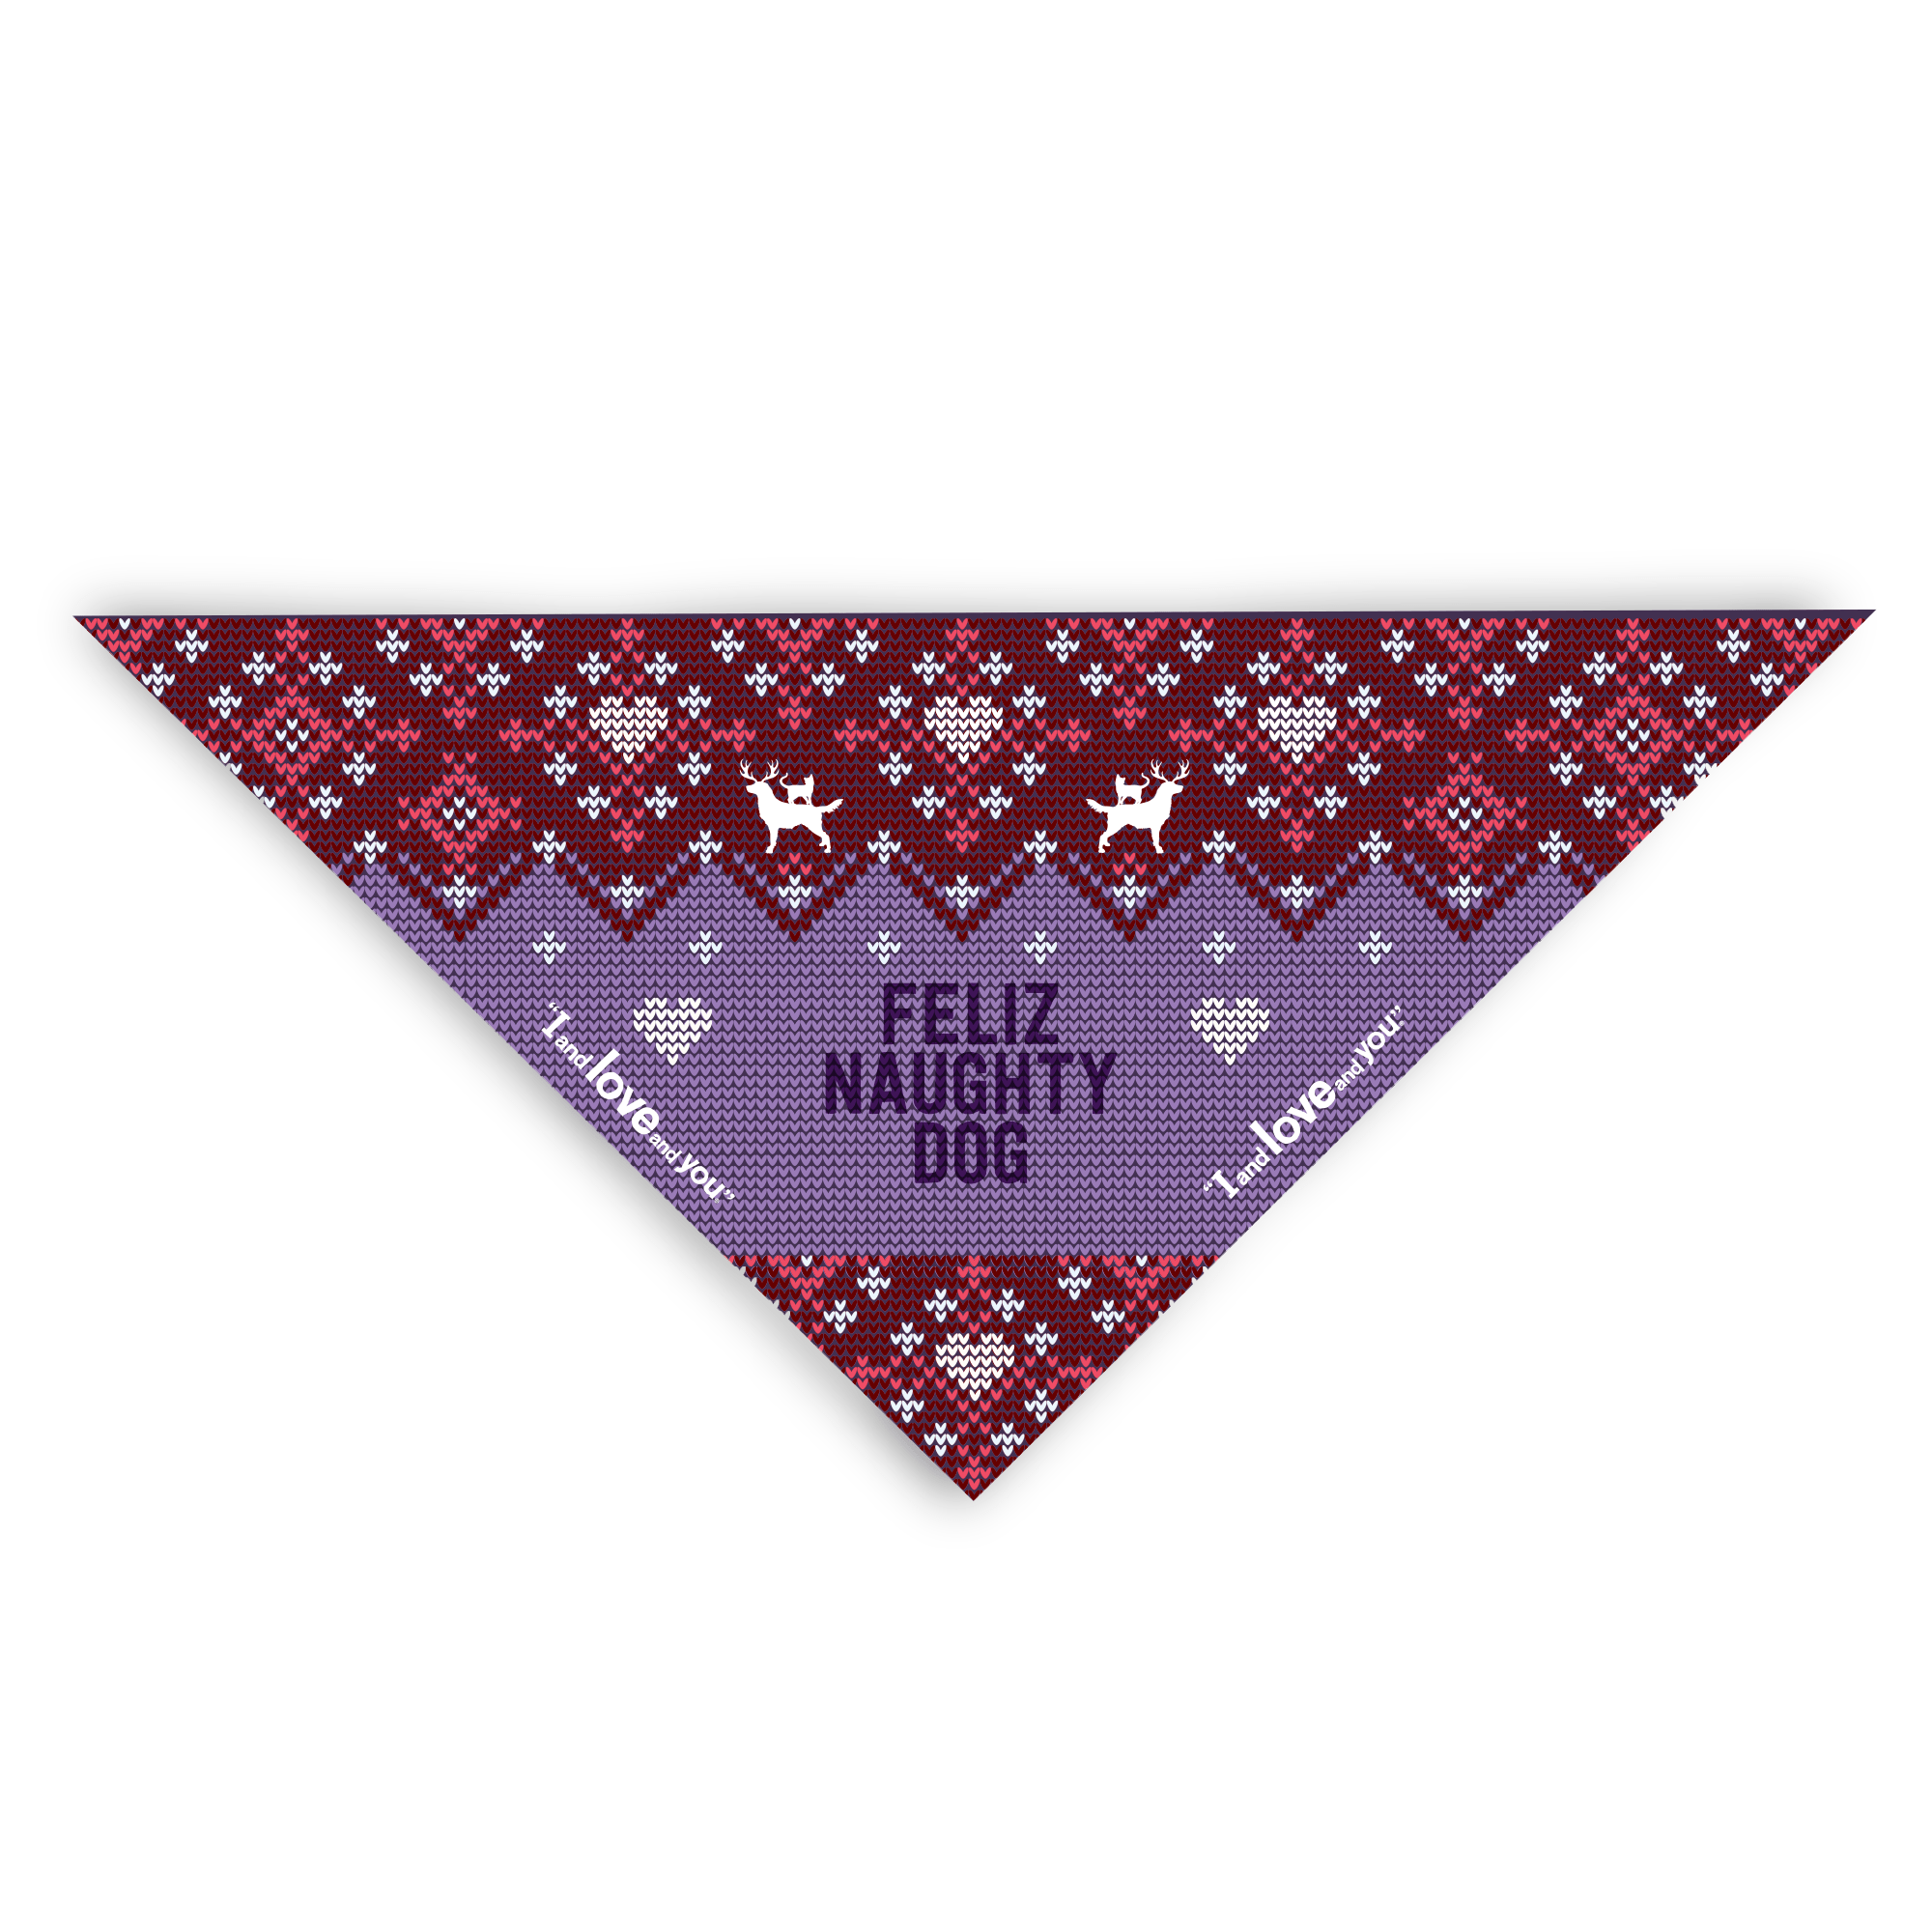 Feliz Naughty Dog Bandana